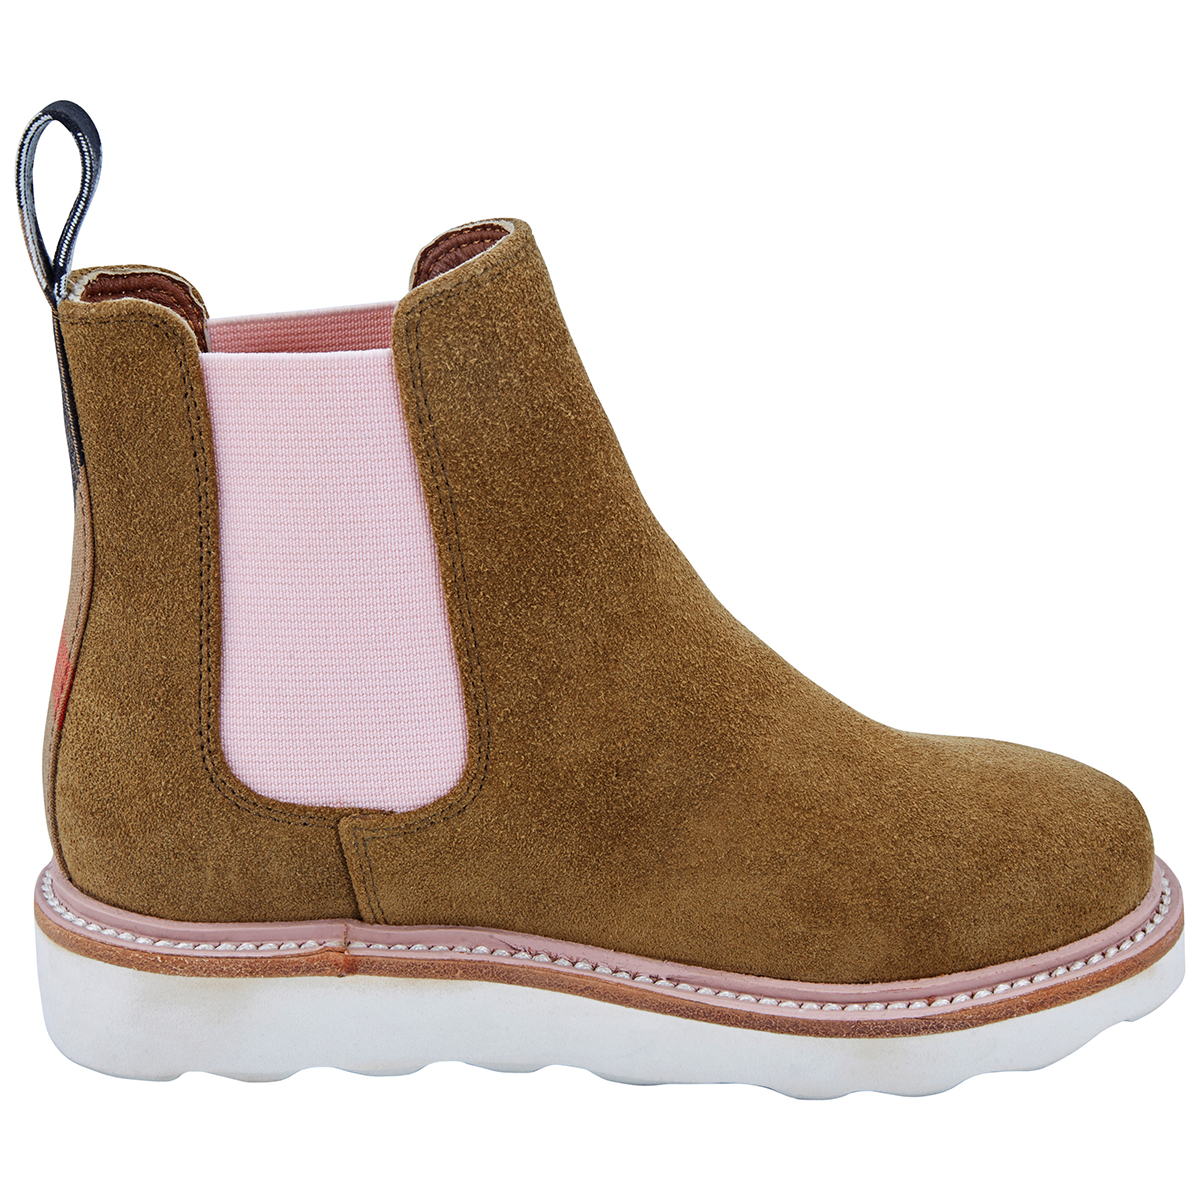 Burberry Childrens Chelsea Ankle Boots